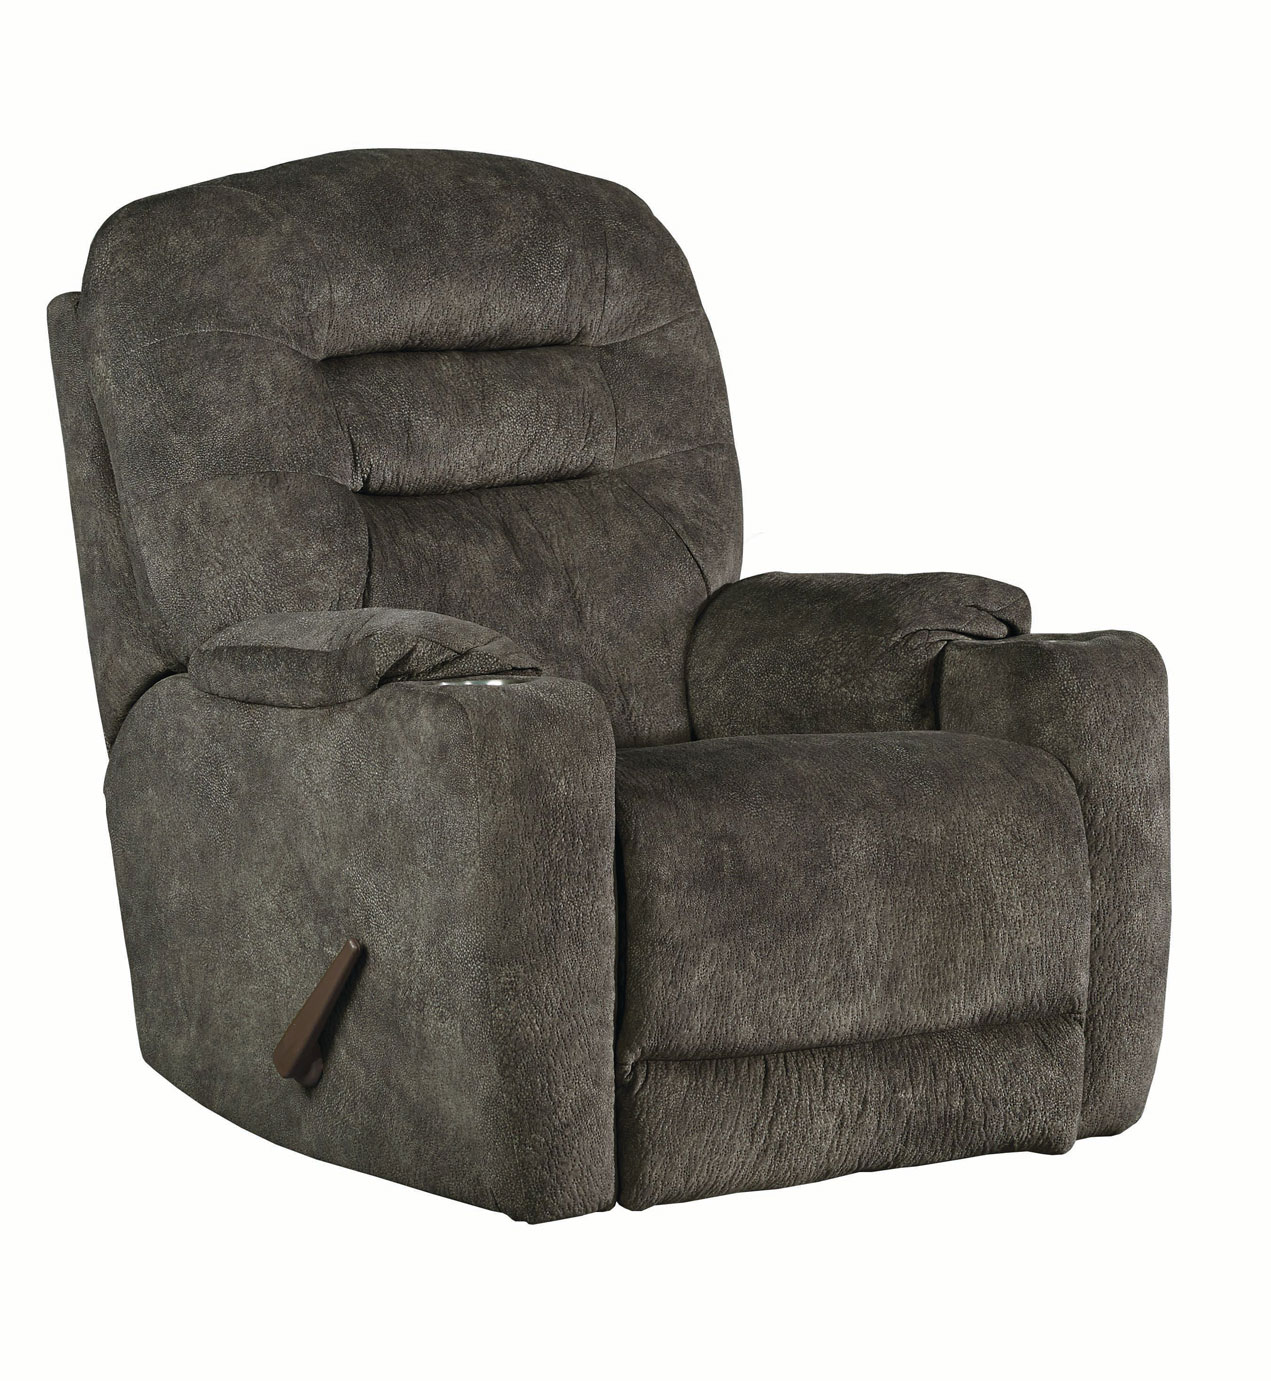 1091 Front Row Recliner Image